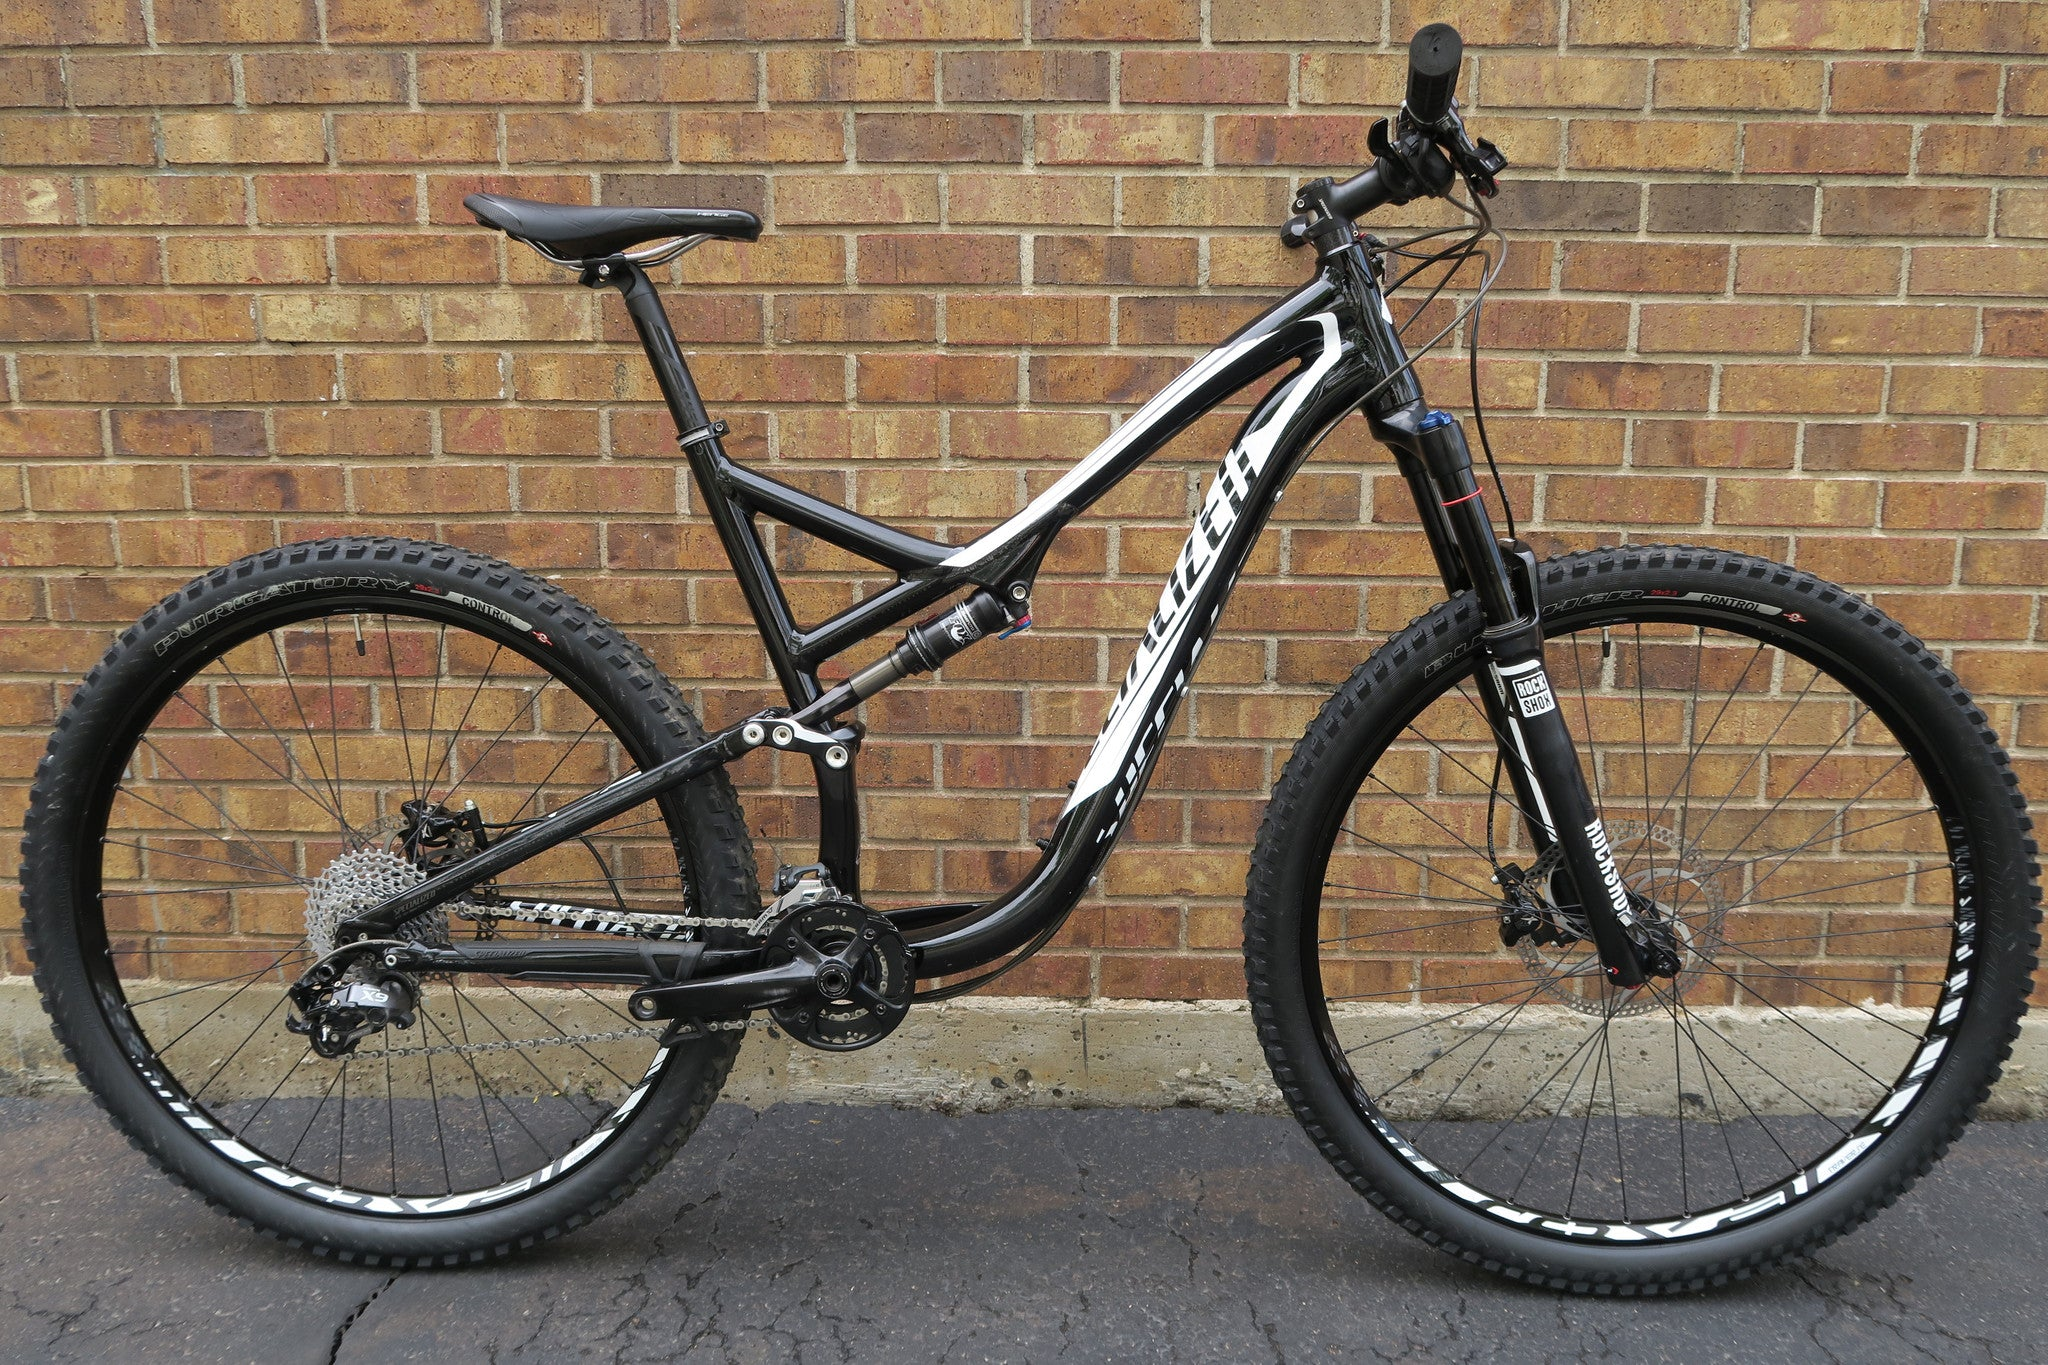 2014 SPECIALIZED STUMPJUMPER COMP EVO